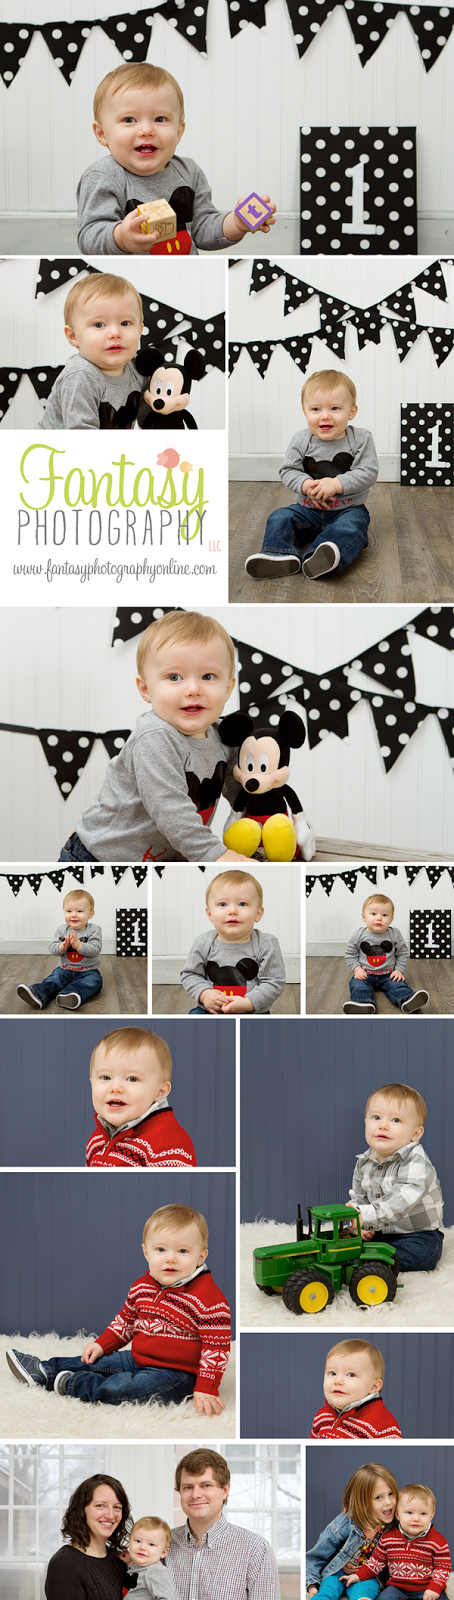 cake smash photographers in winston salem nc | baby photography